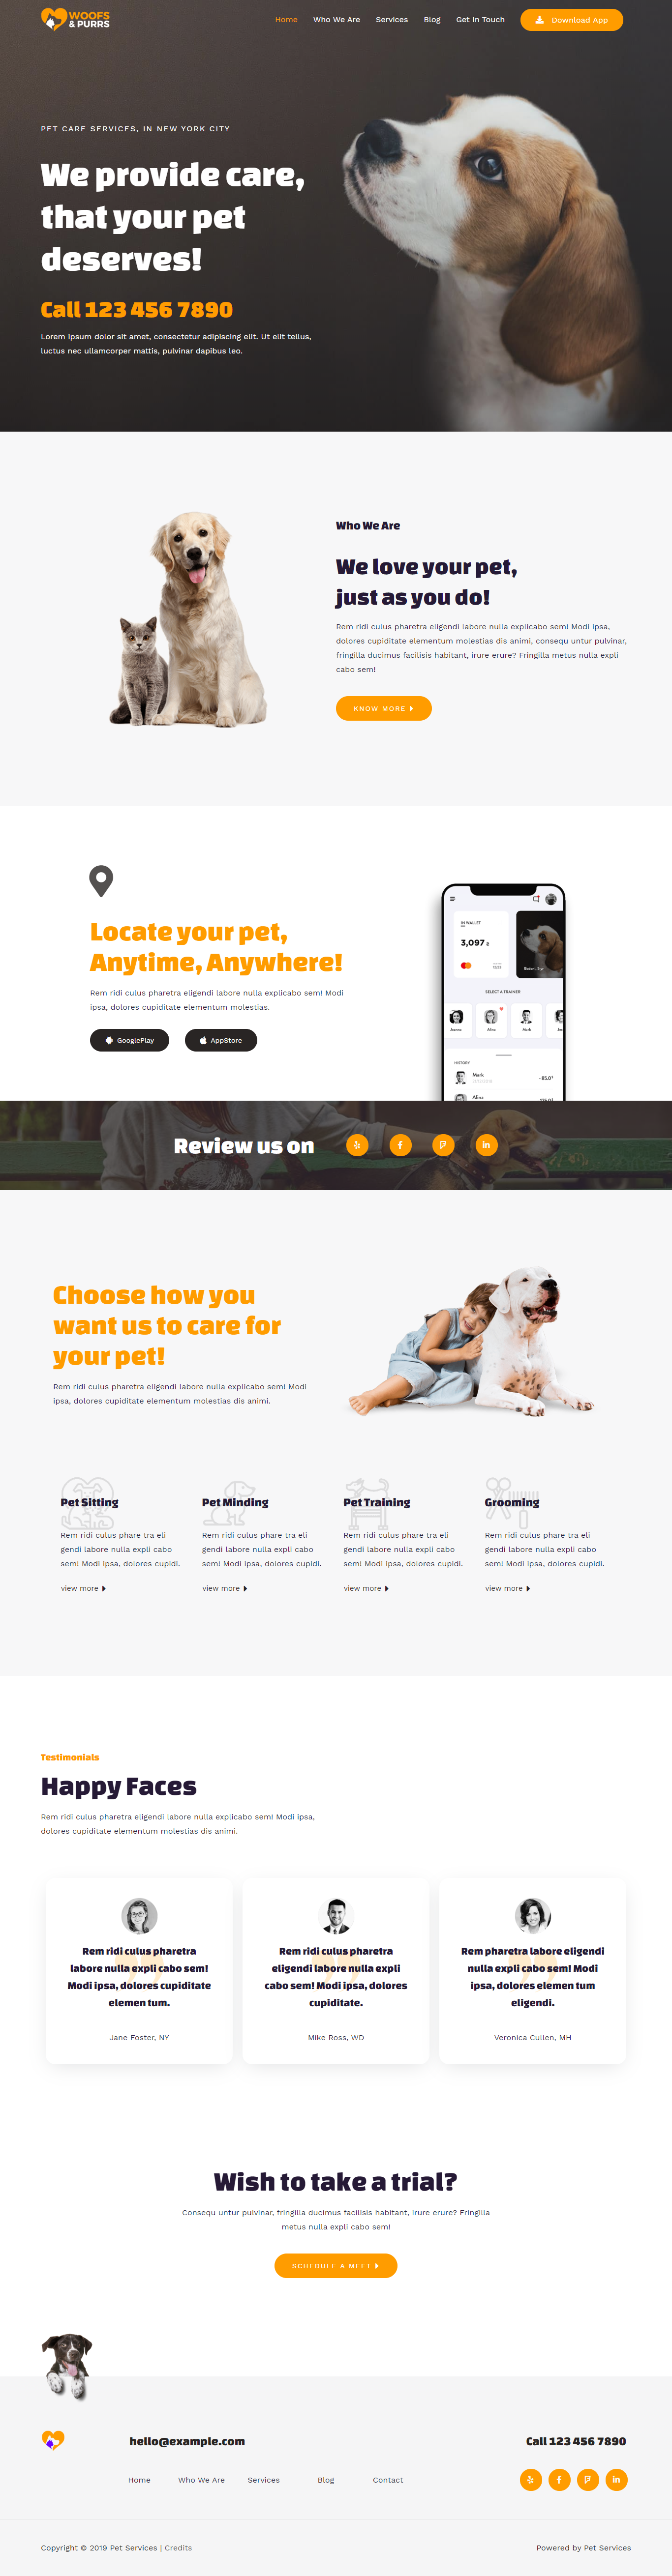 screencapture-websitedemos-net-pet-sitting-01-2019-11-12-16_55_25